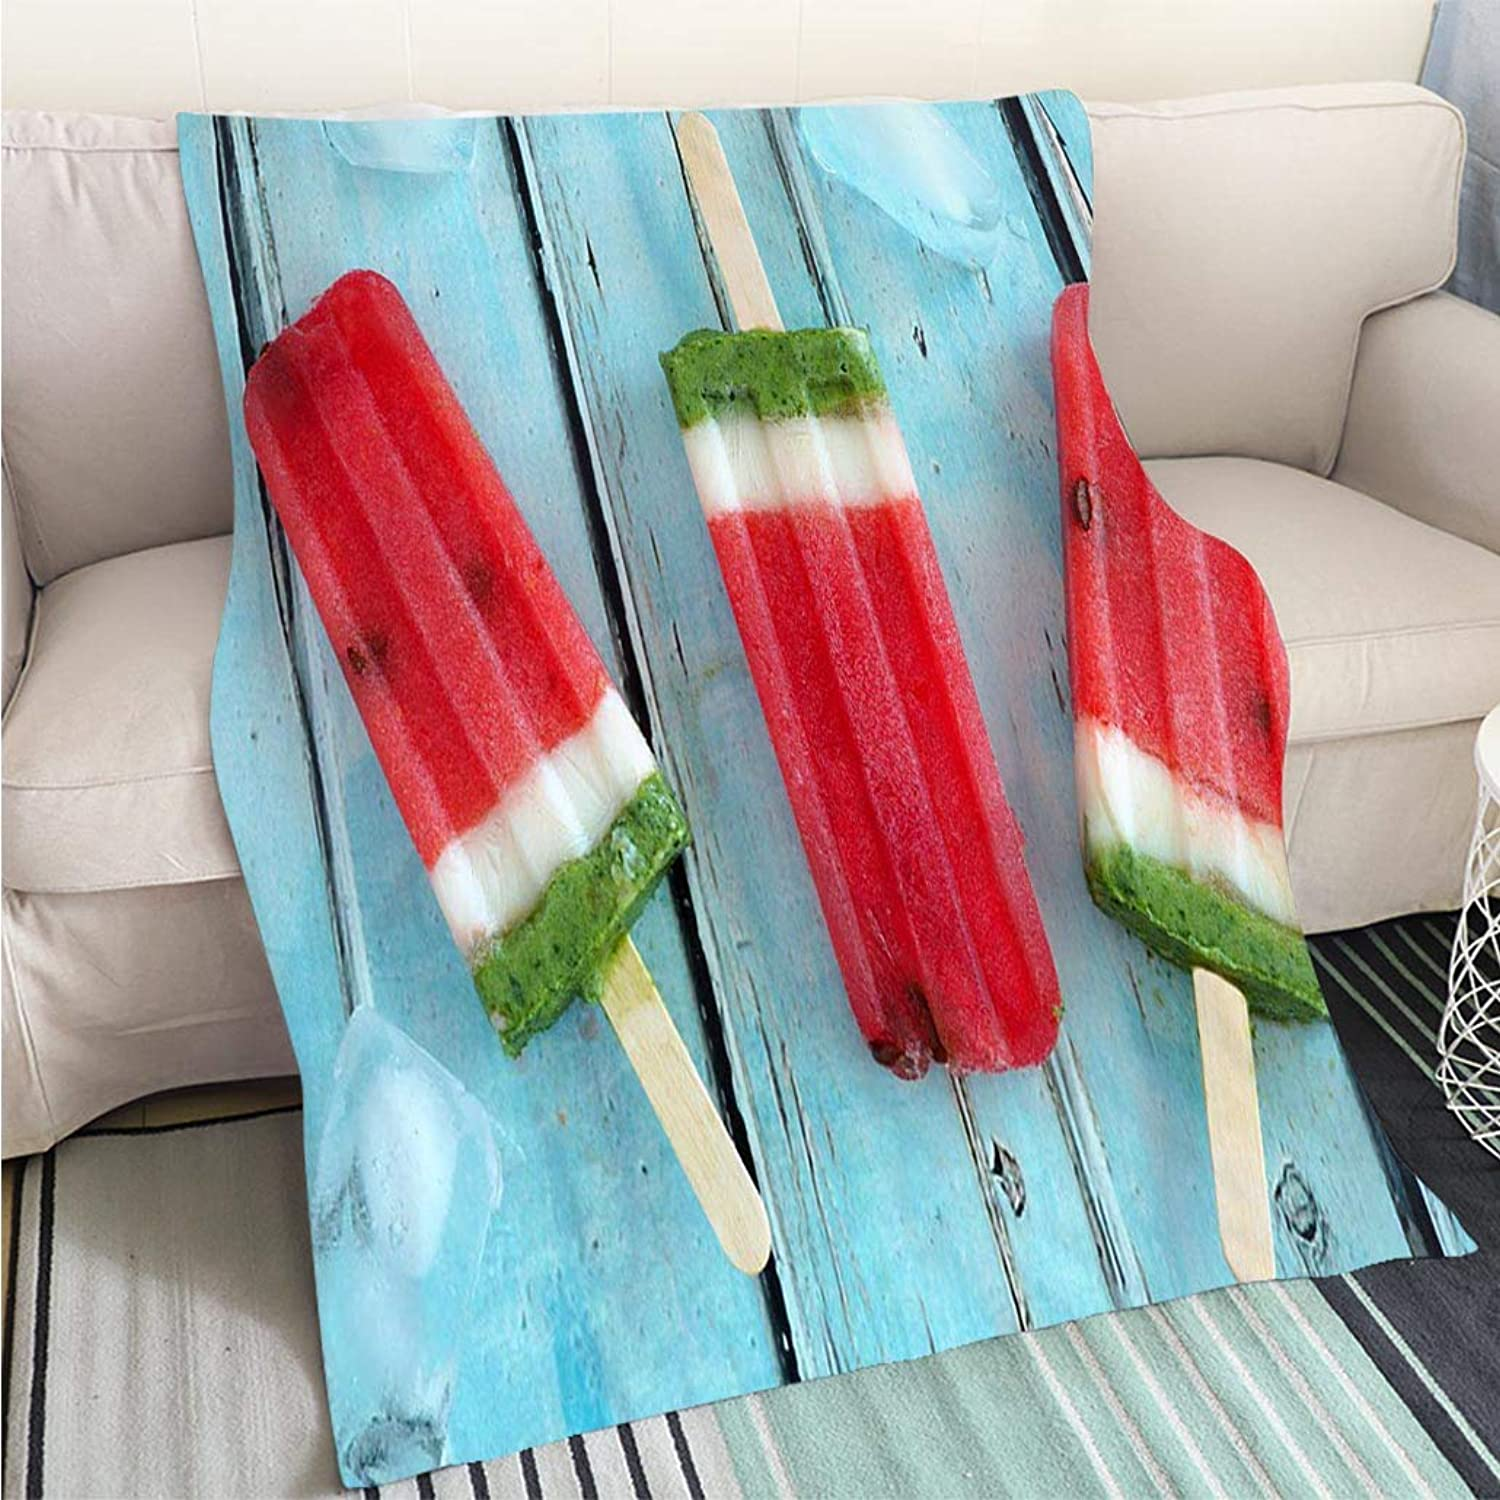 BEICICI Comforter Multicolor Bed or Couch Homemade Watermelon Popsicles with ice Against Rustic bluee Wood Fun Design AllSeason Blanket Bed or Couch